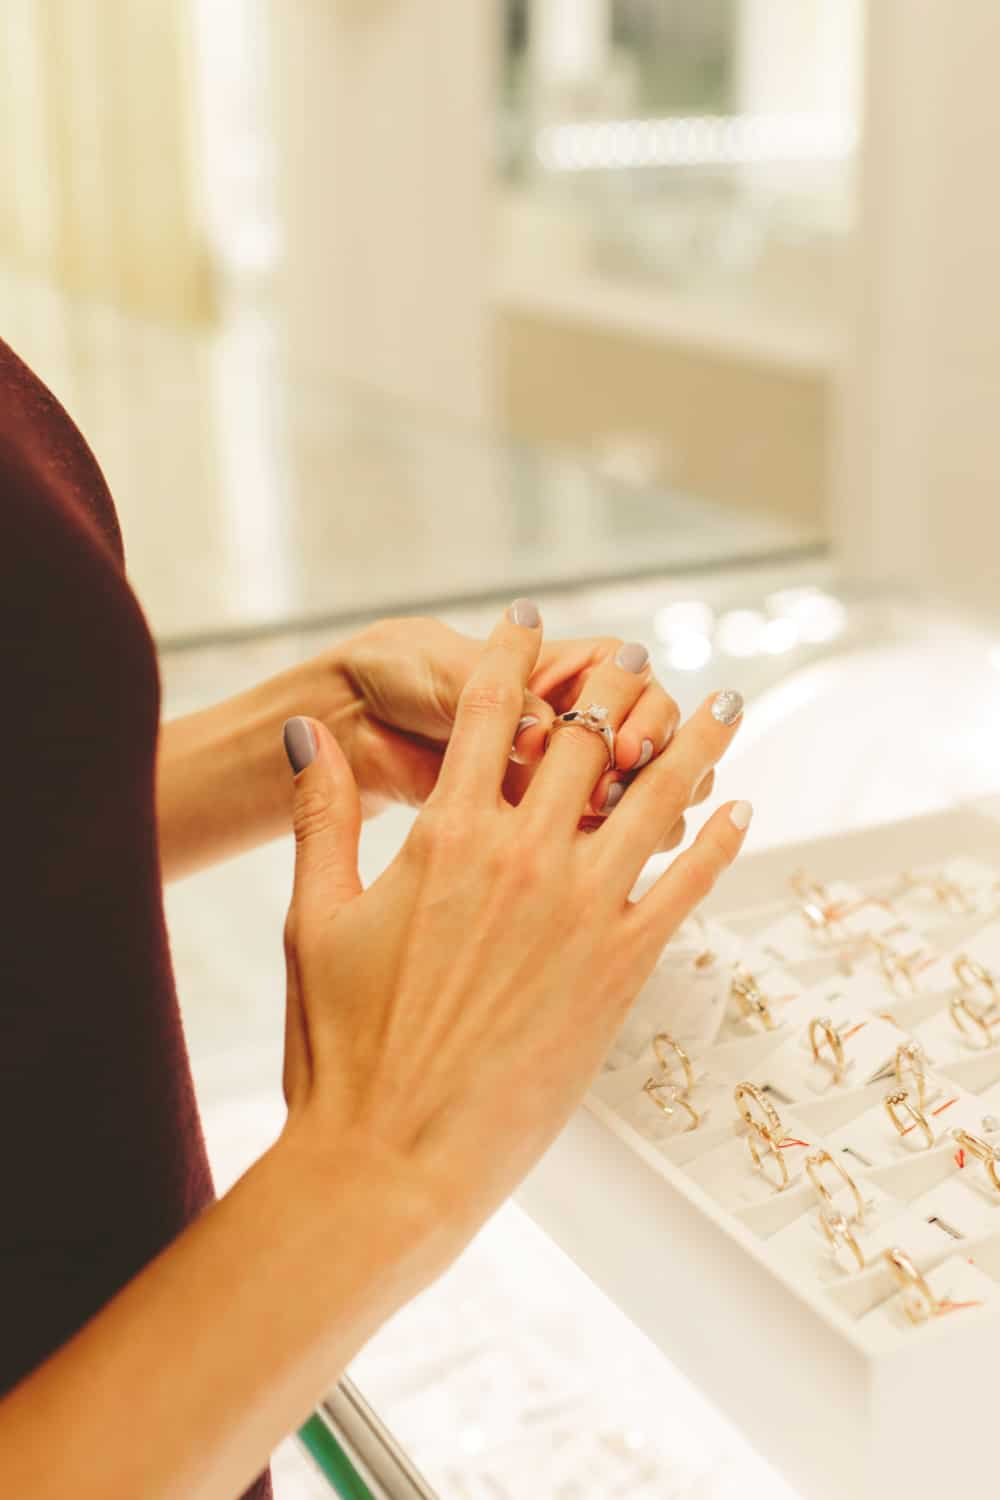 What factor should you consider before deciding on who buys the wedding rings